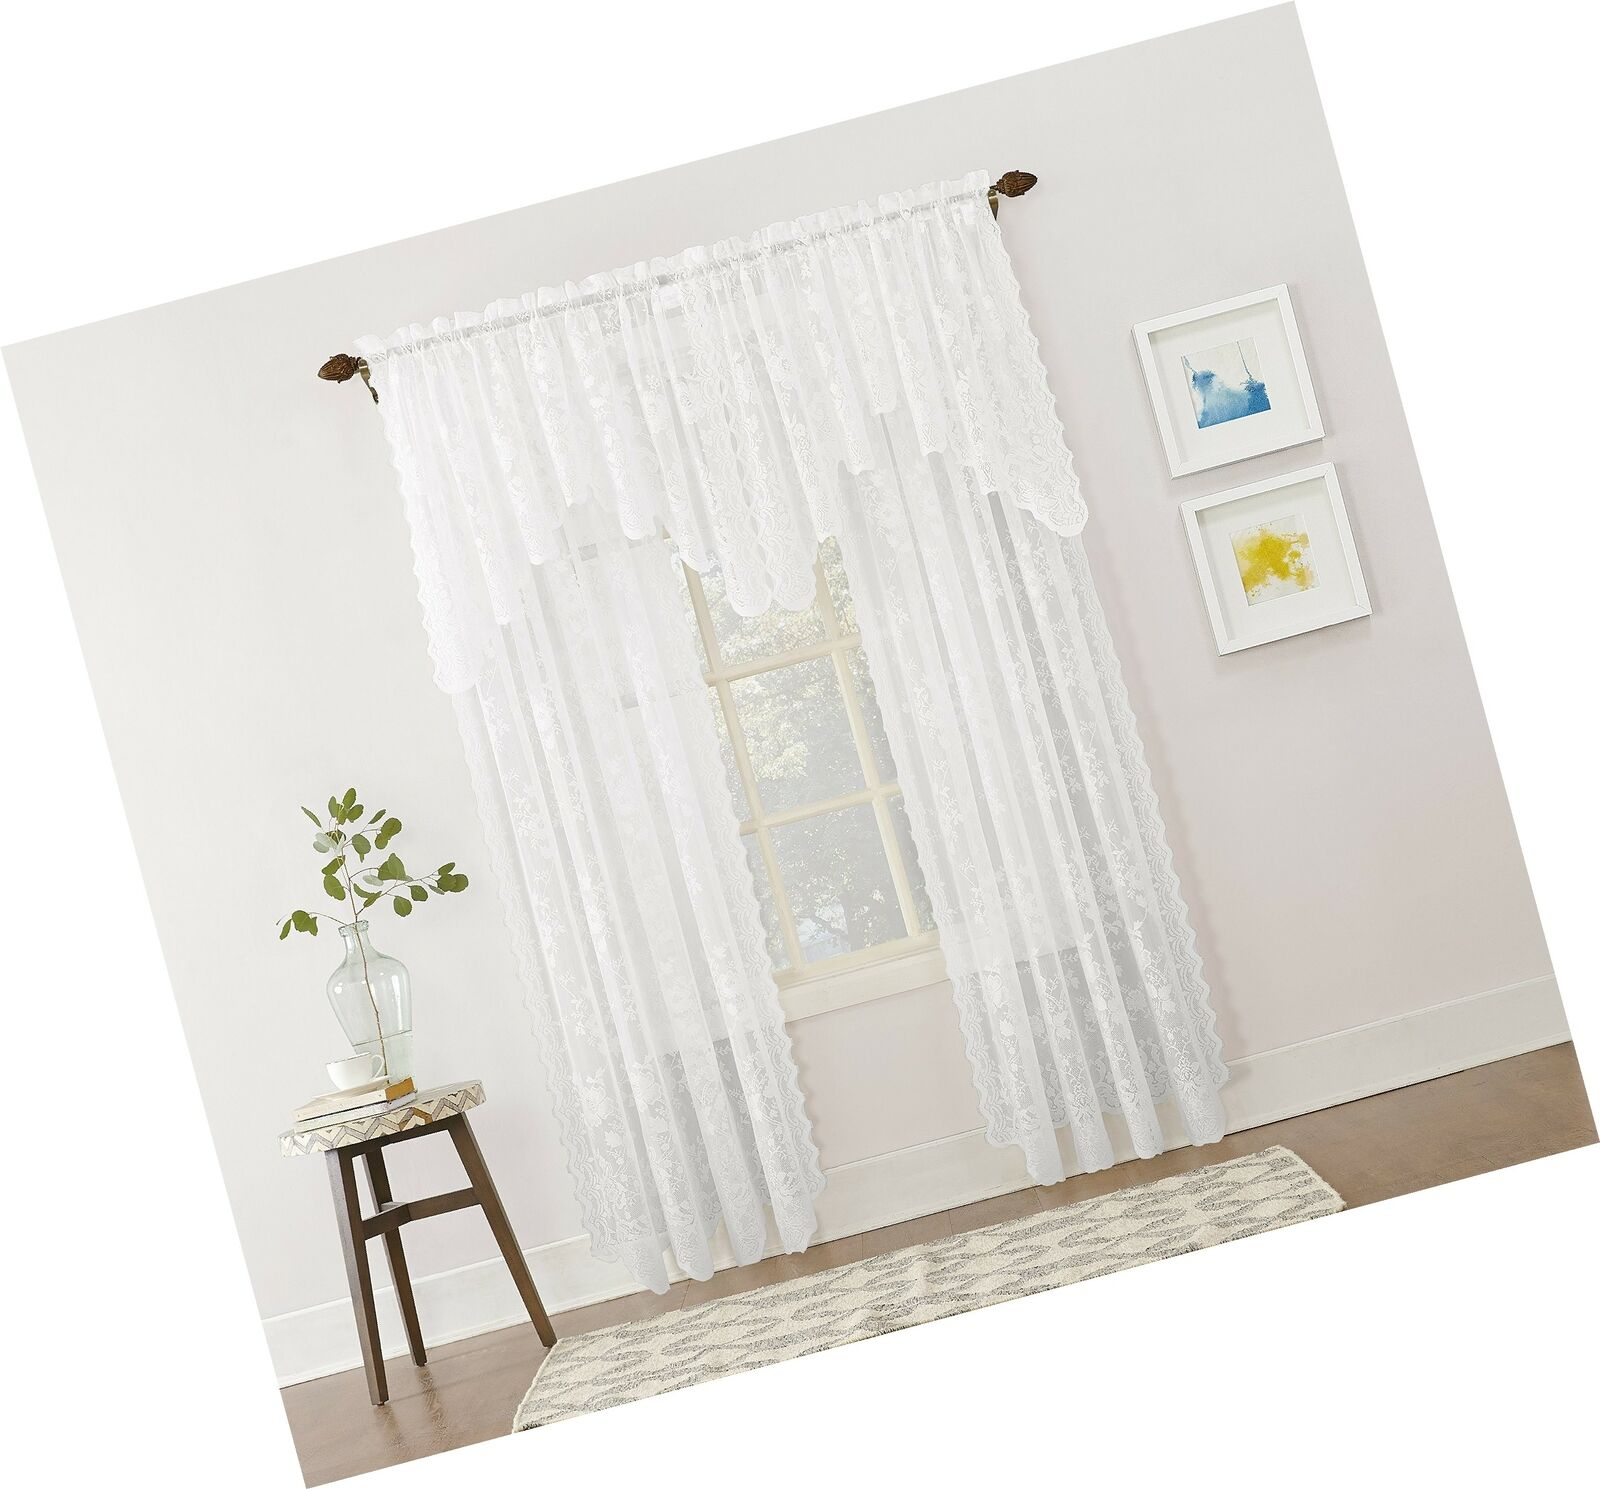 No 918 Alison Floral Lace Sheer Rod Pocket Curtain Panel 58 X White In Alison Rod Pocket Lace Window Curtain Panels (Image 12 of 20)